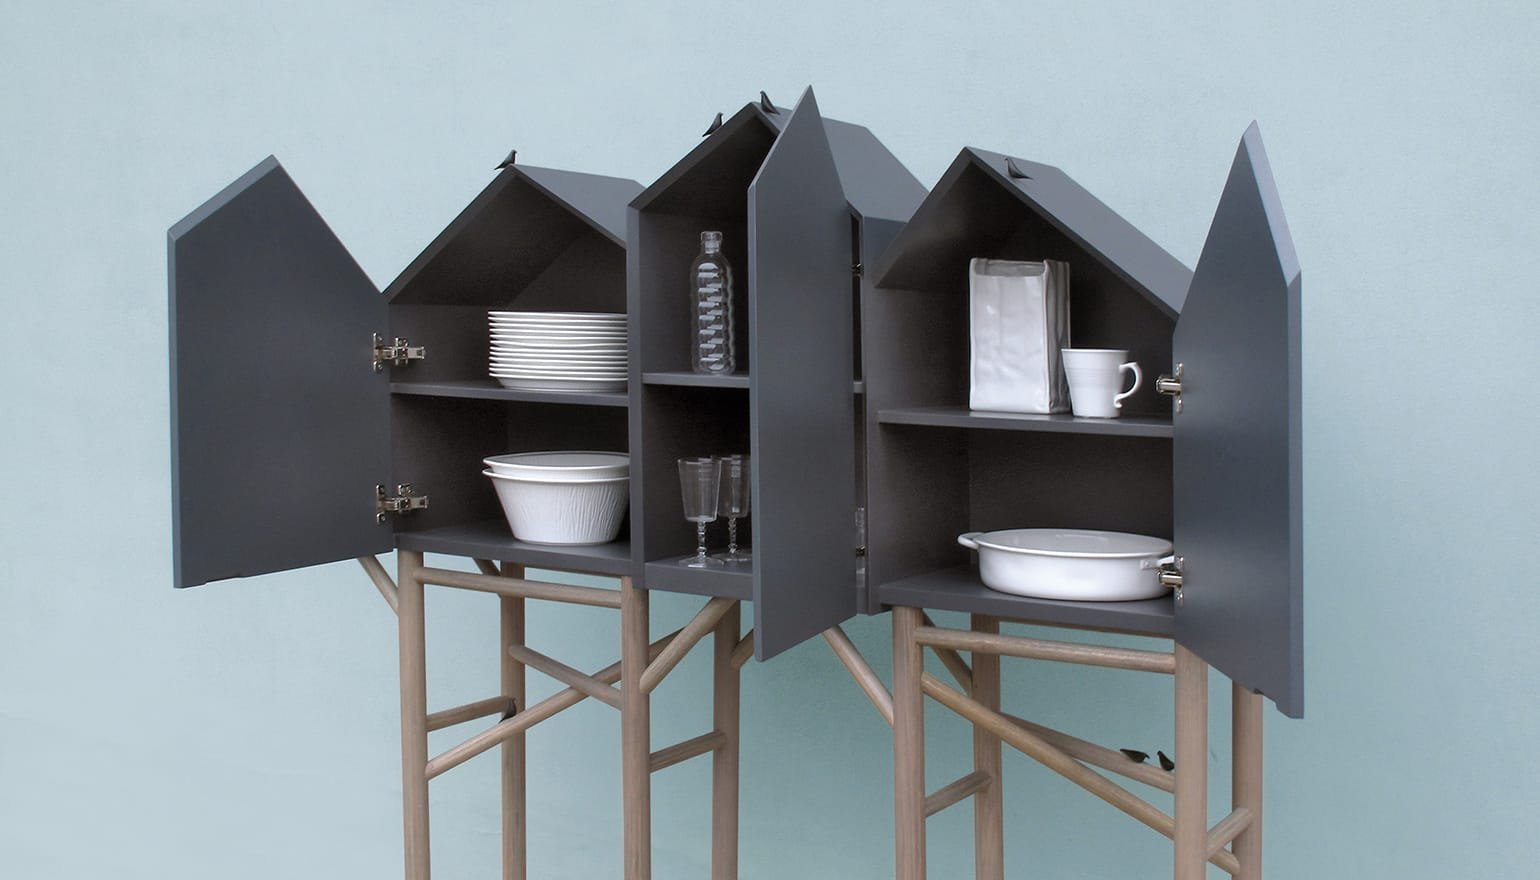 seletti_wholecontract_mobiliario_luminarias_furniture_lightnings_objetos_objects_armarios_closets